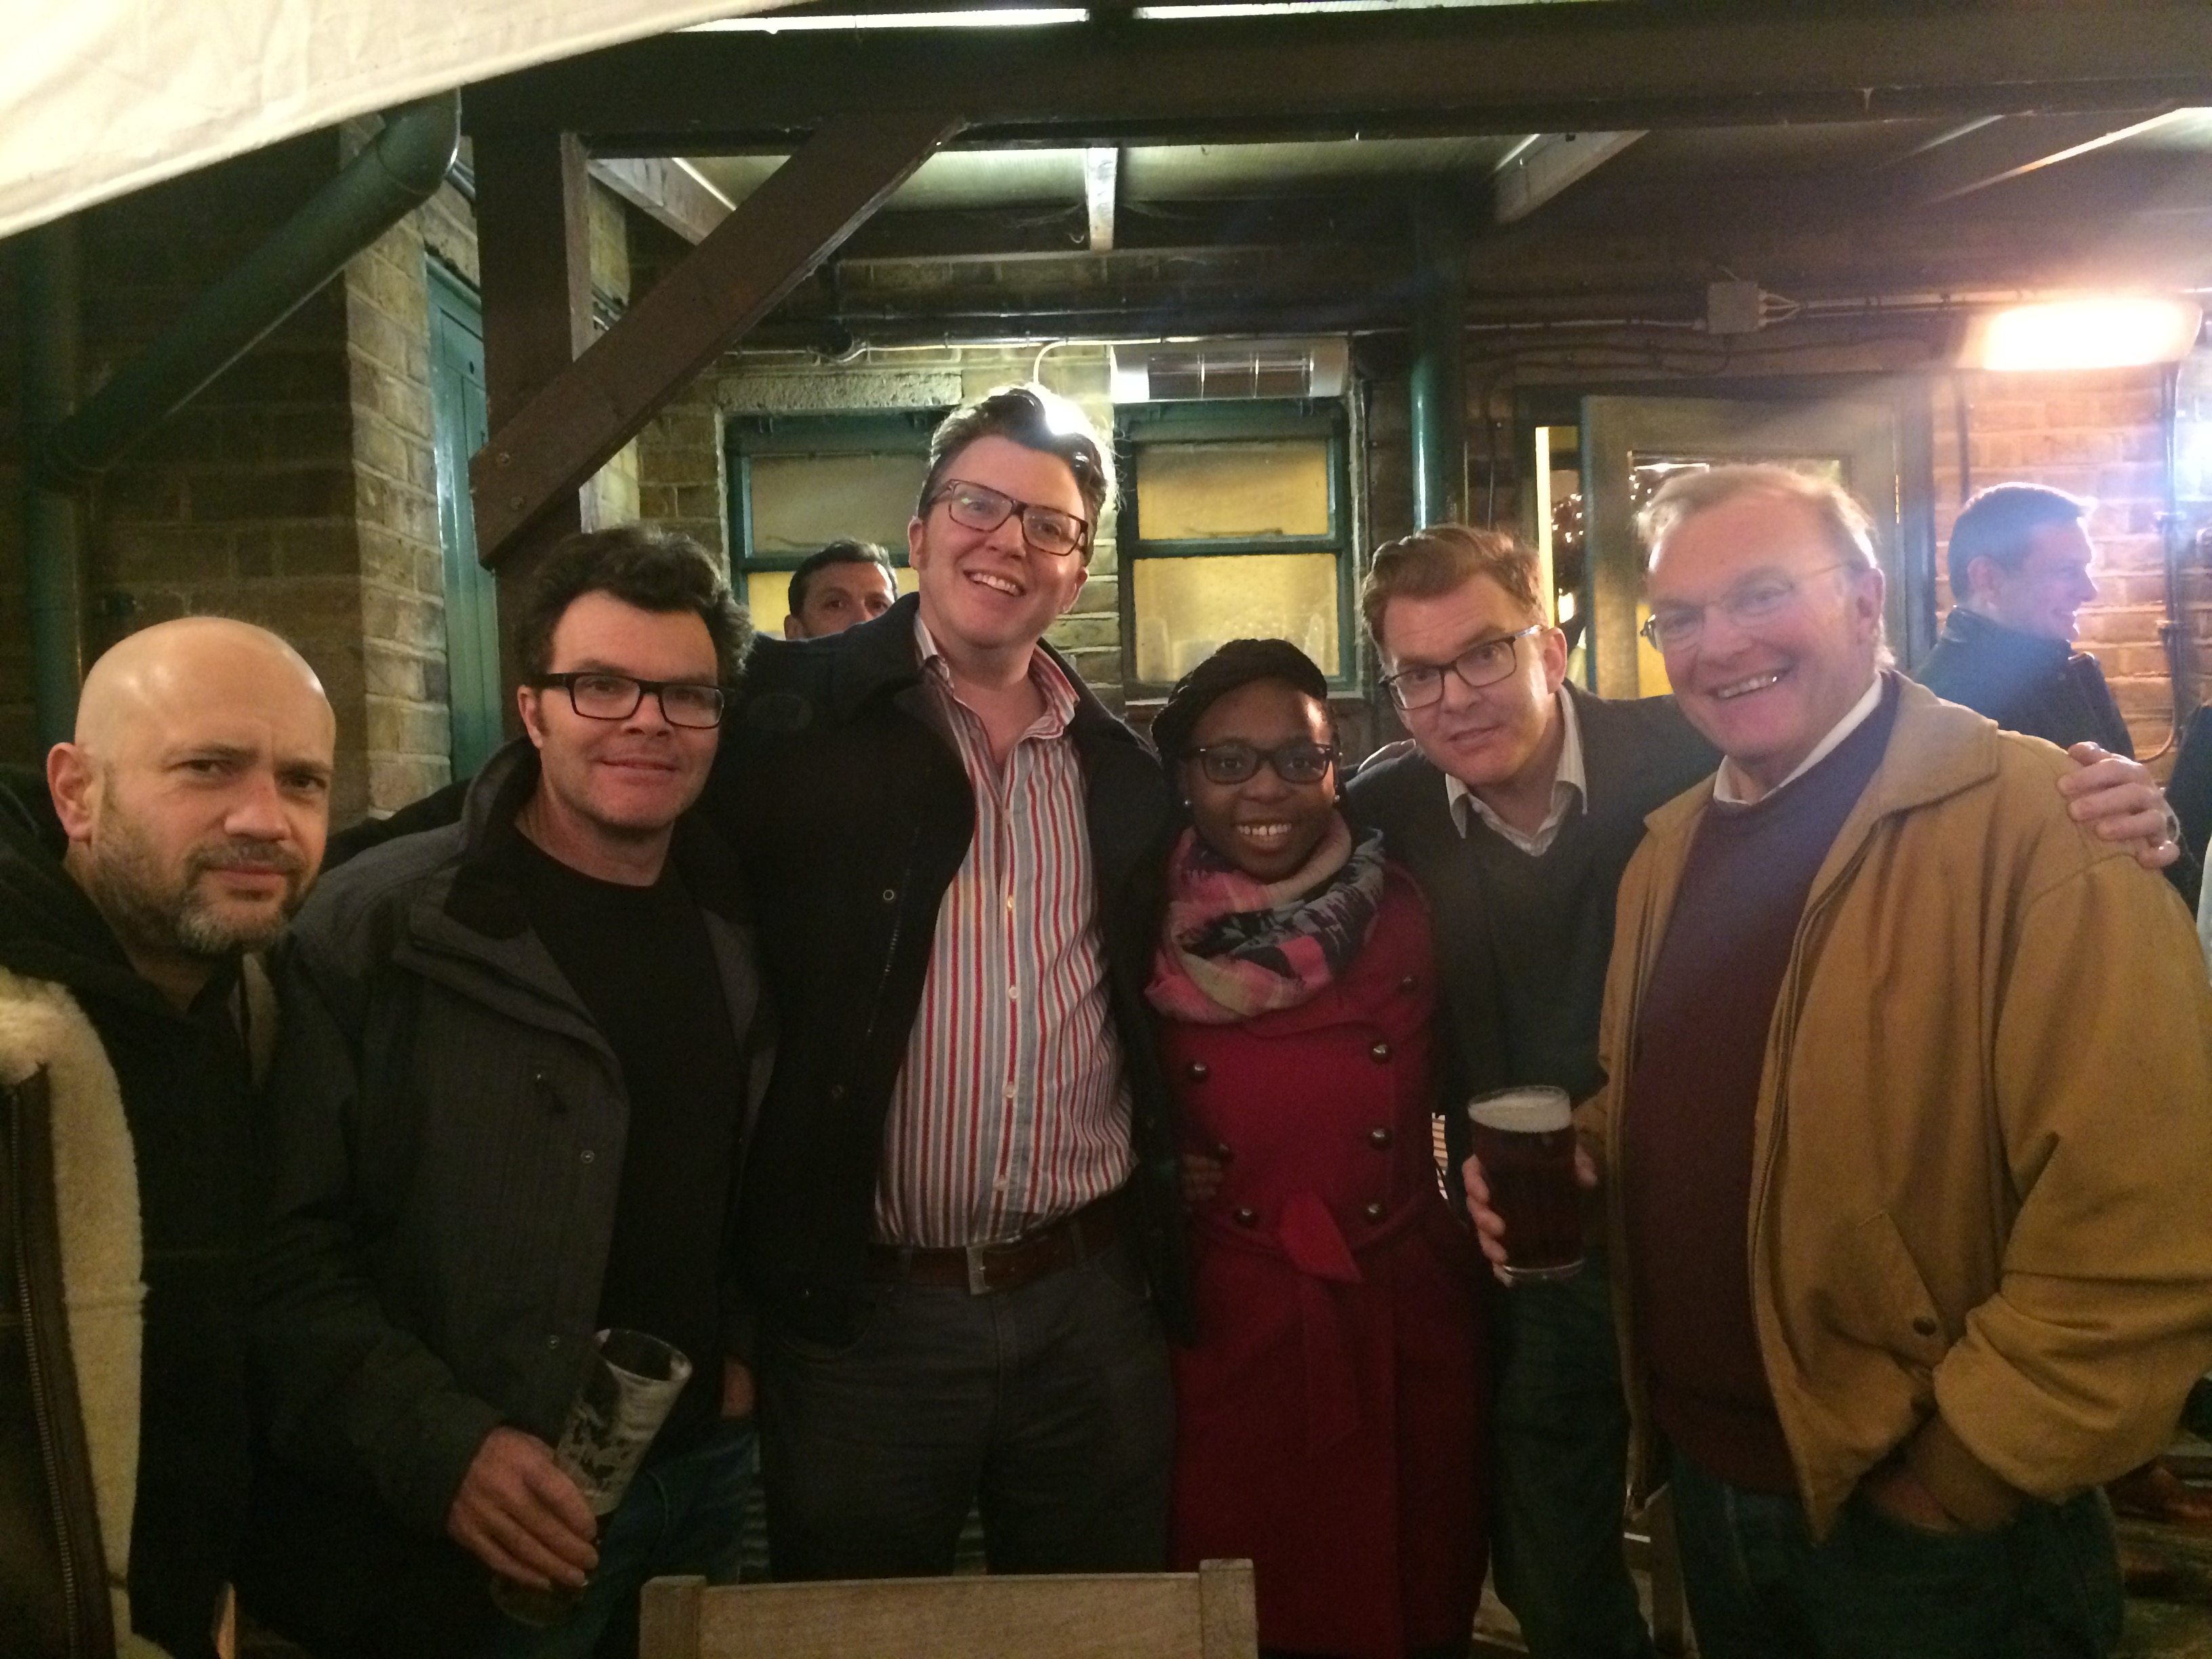 Some of the crew, at Spivs in Woodford